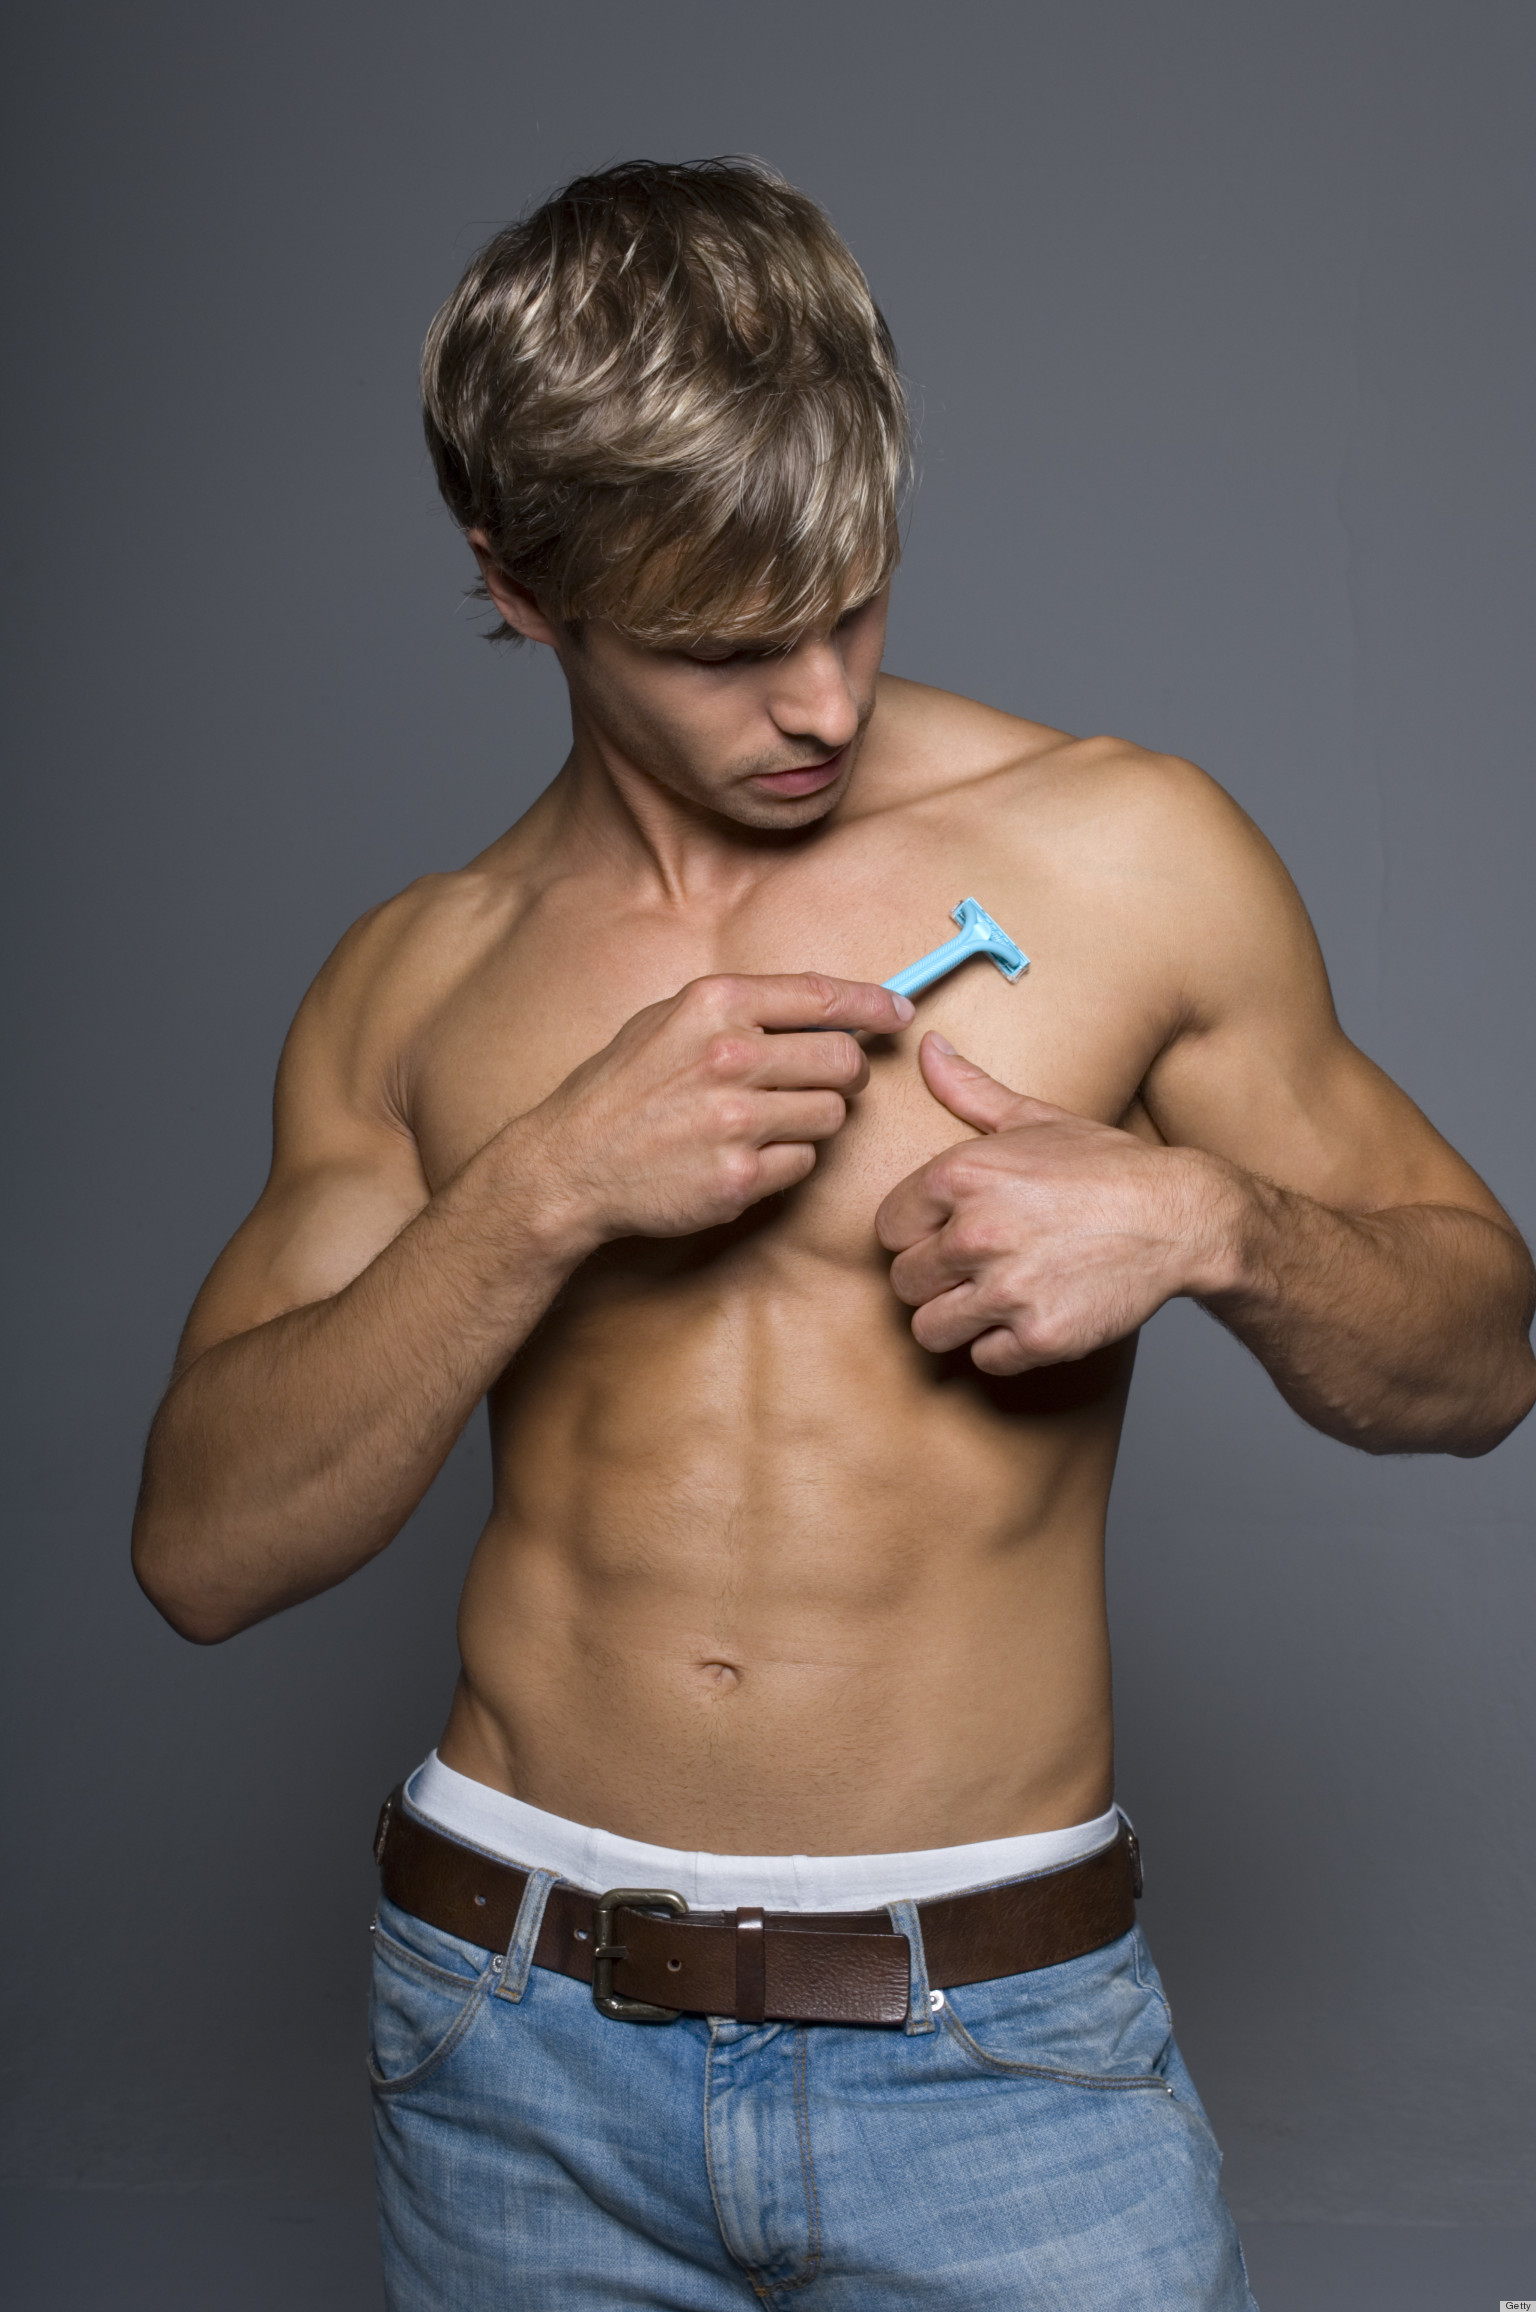 http://i.huffpost.com/gen/1195708/images/o-CHEST-SHAVING-facebook.jpg